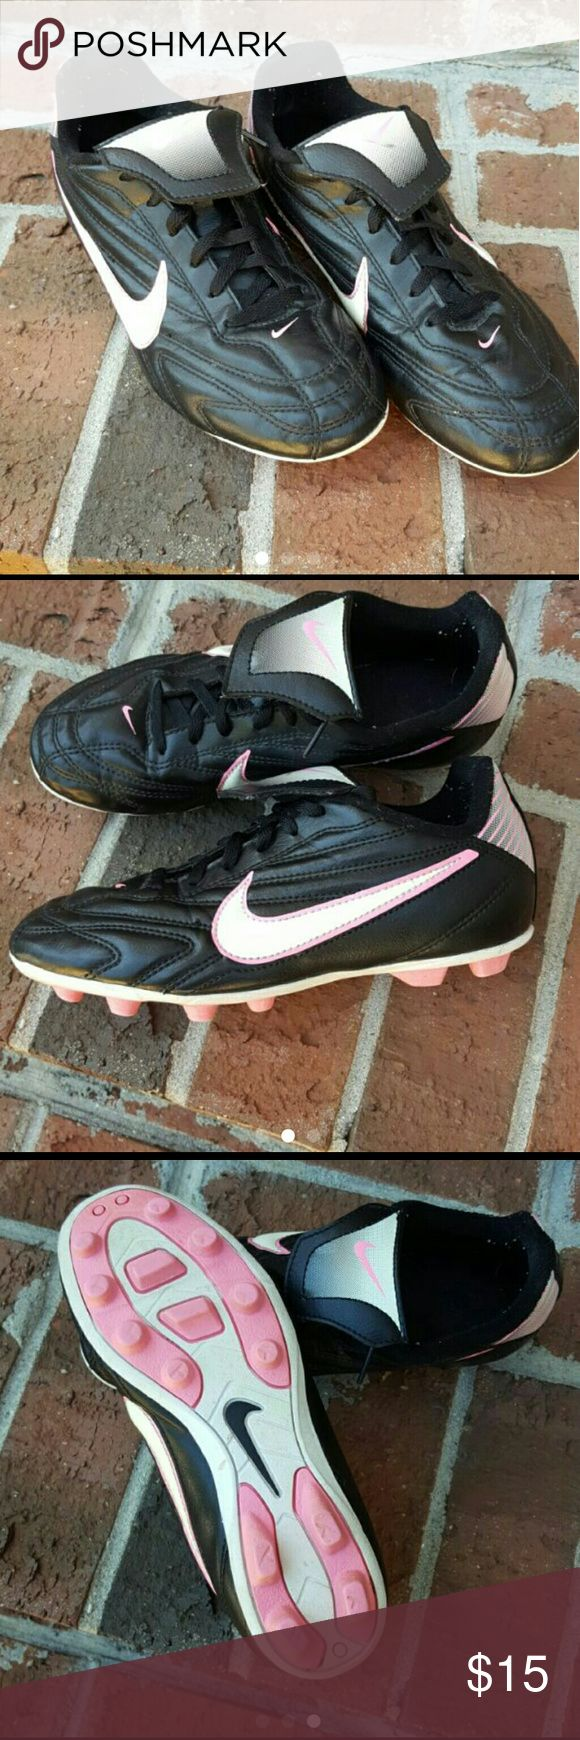 Nike turf shoes- kids Nike Cleats.  Good condition. Nike Shoes Sneakers